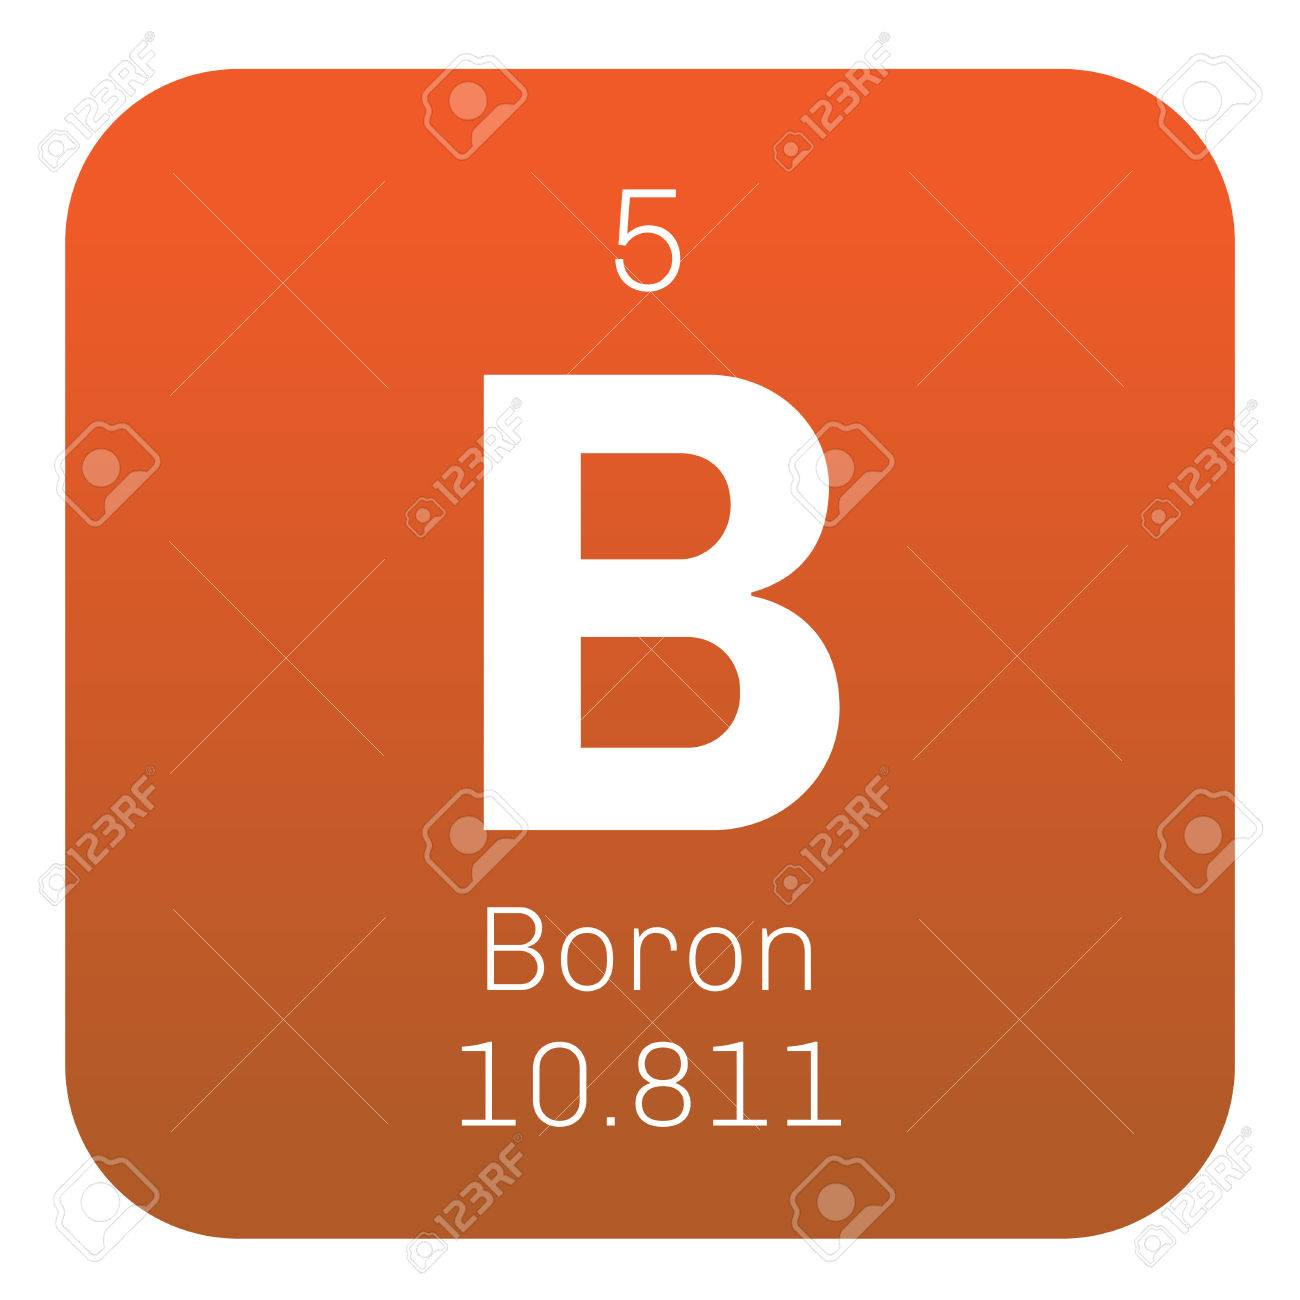 Boron chemical element a low abundance element in the solar atomic weight chemical element of periodic table boron chemical element a low abundance element in the solar system colored icon urtaz Gallery